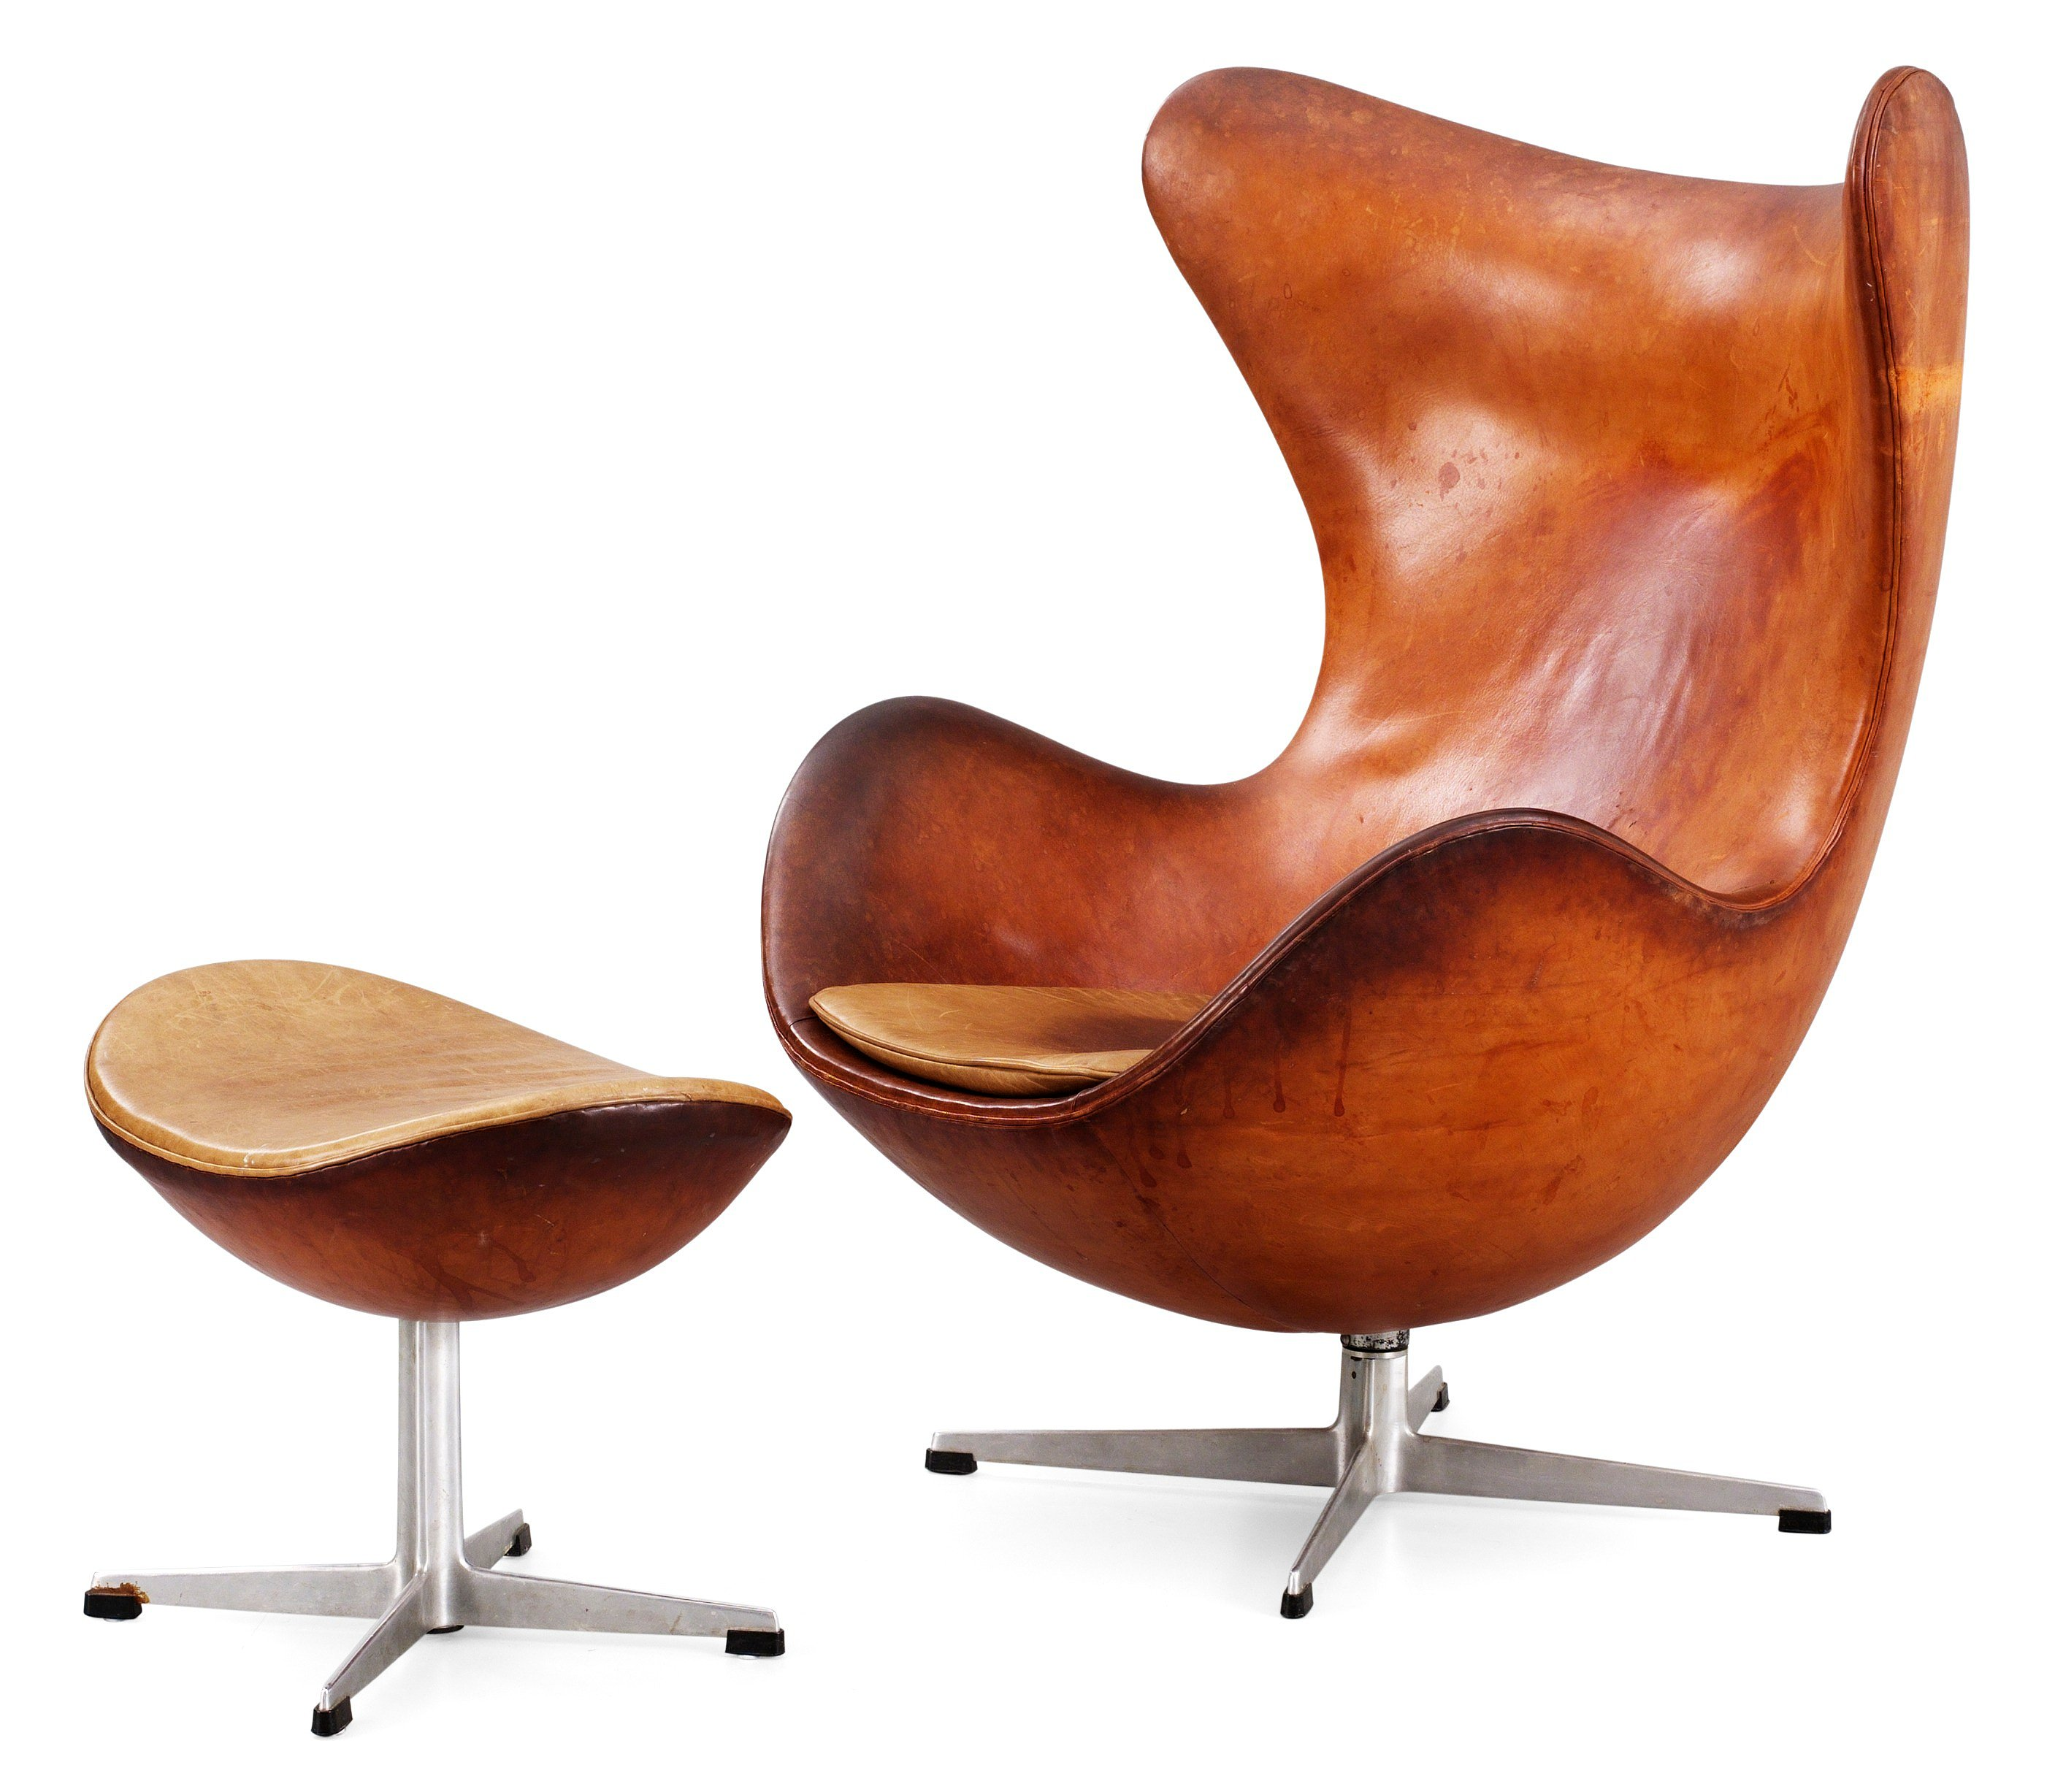 Egg Sessel Arne Jacobsen An Arne Jacobsen Brown Leather Egg Chair With Ottoman By Fritz